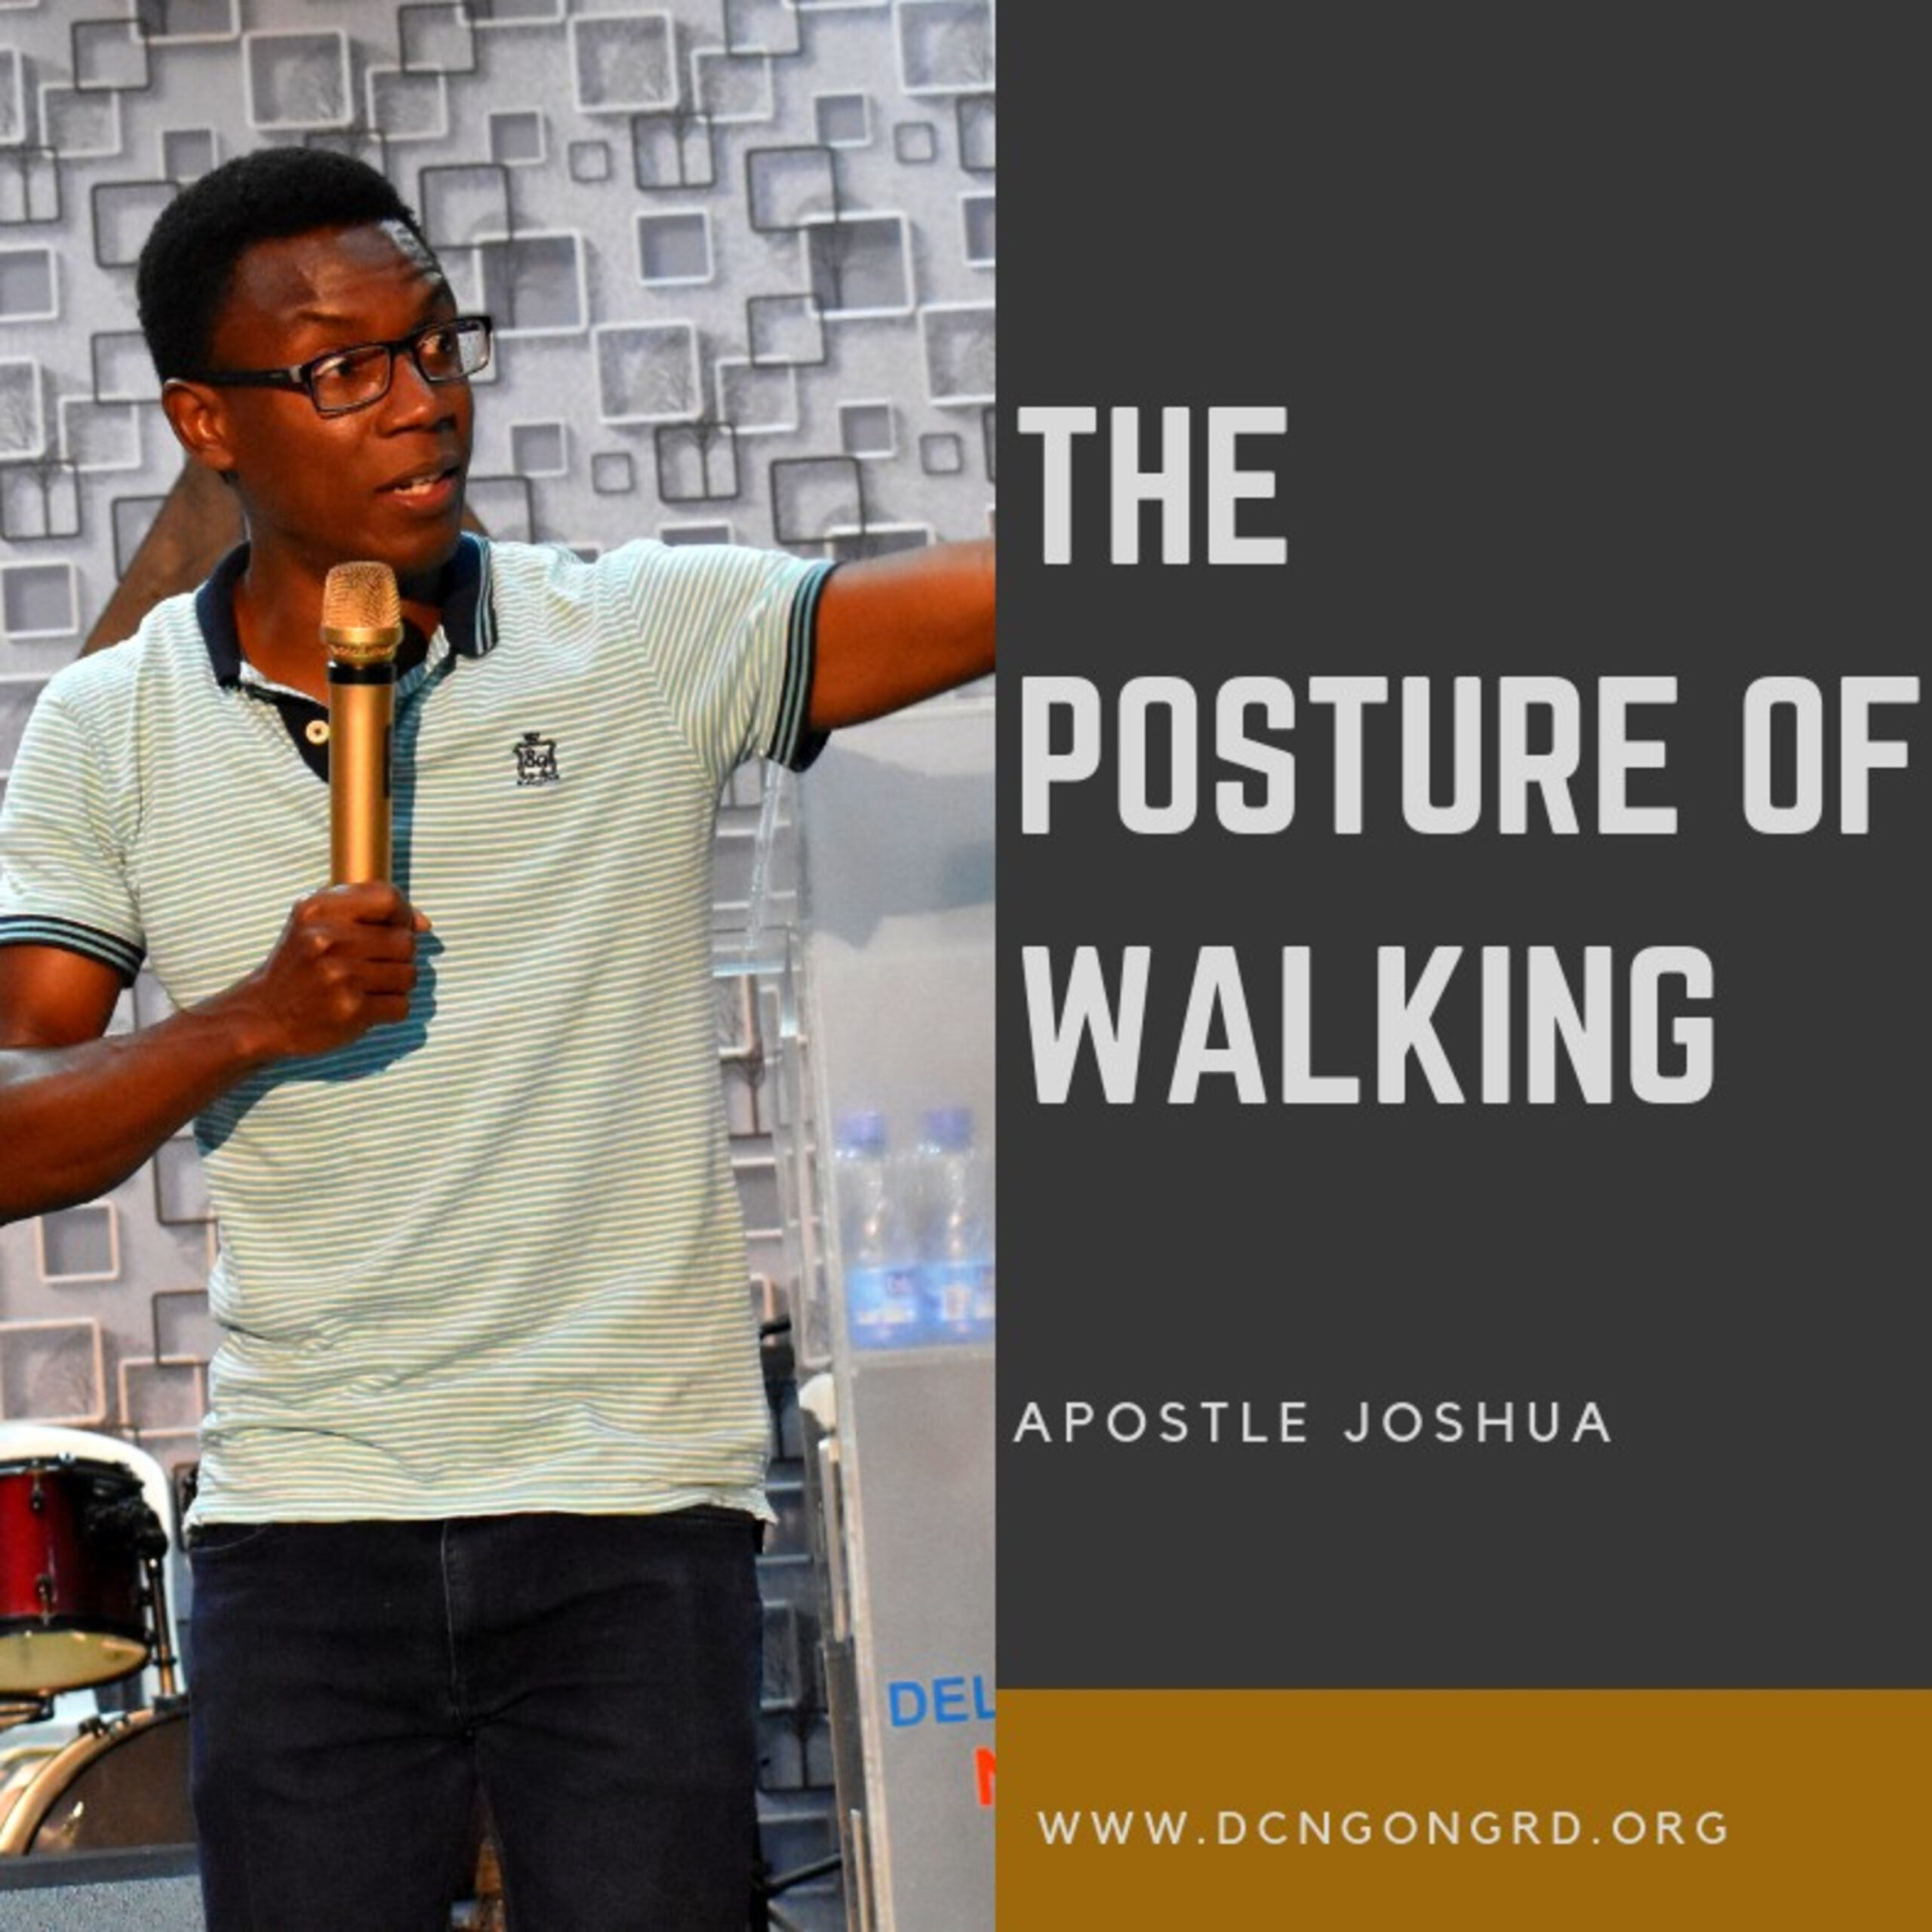 The Pattern of the Cross - The Posture of Walking